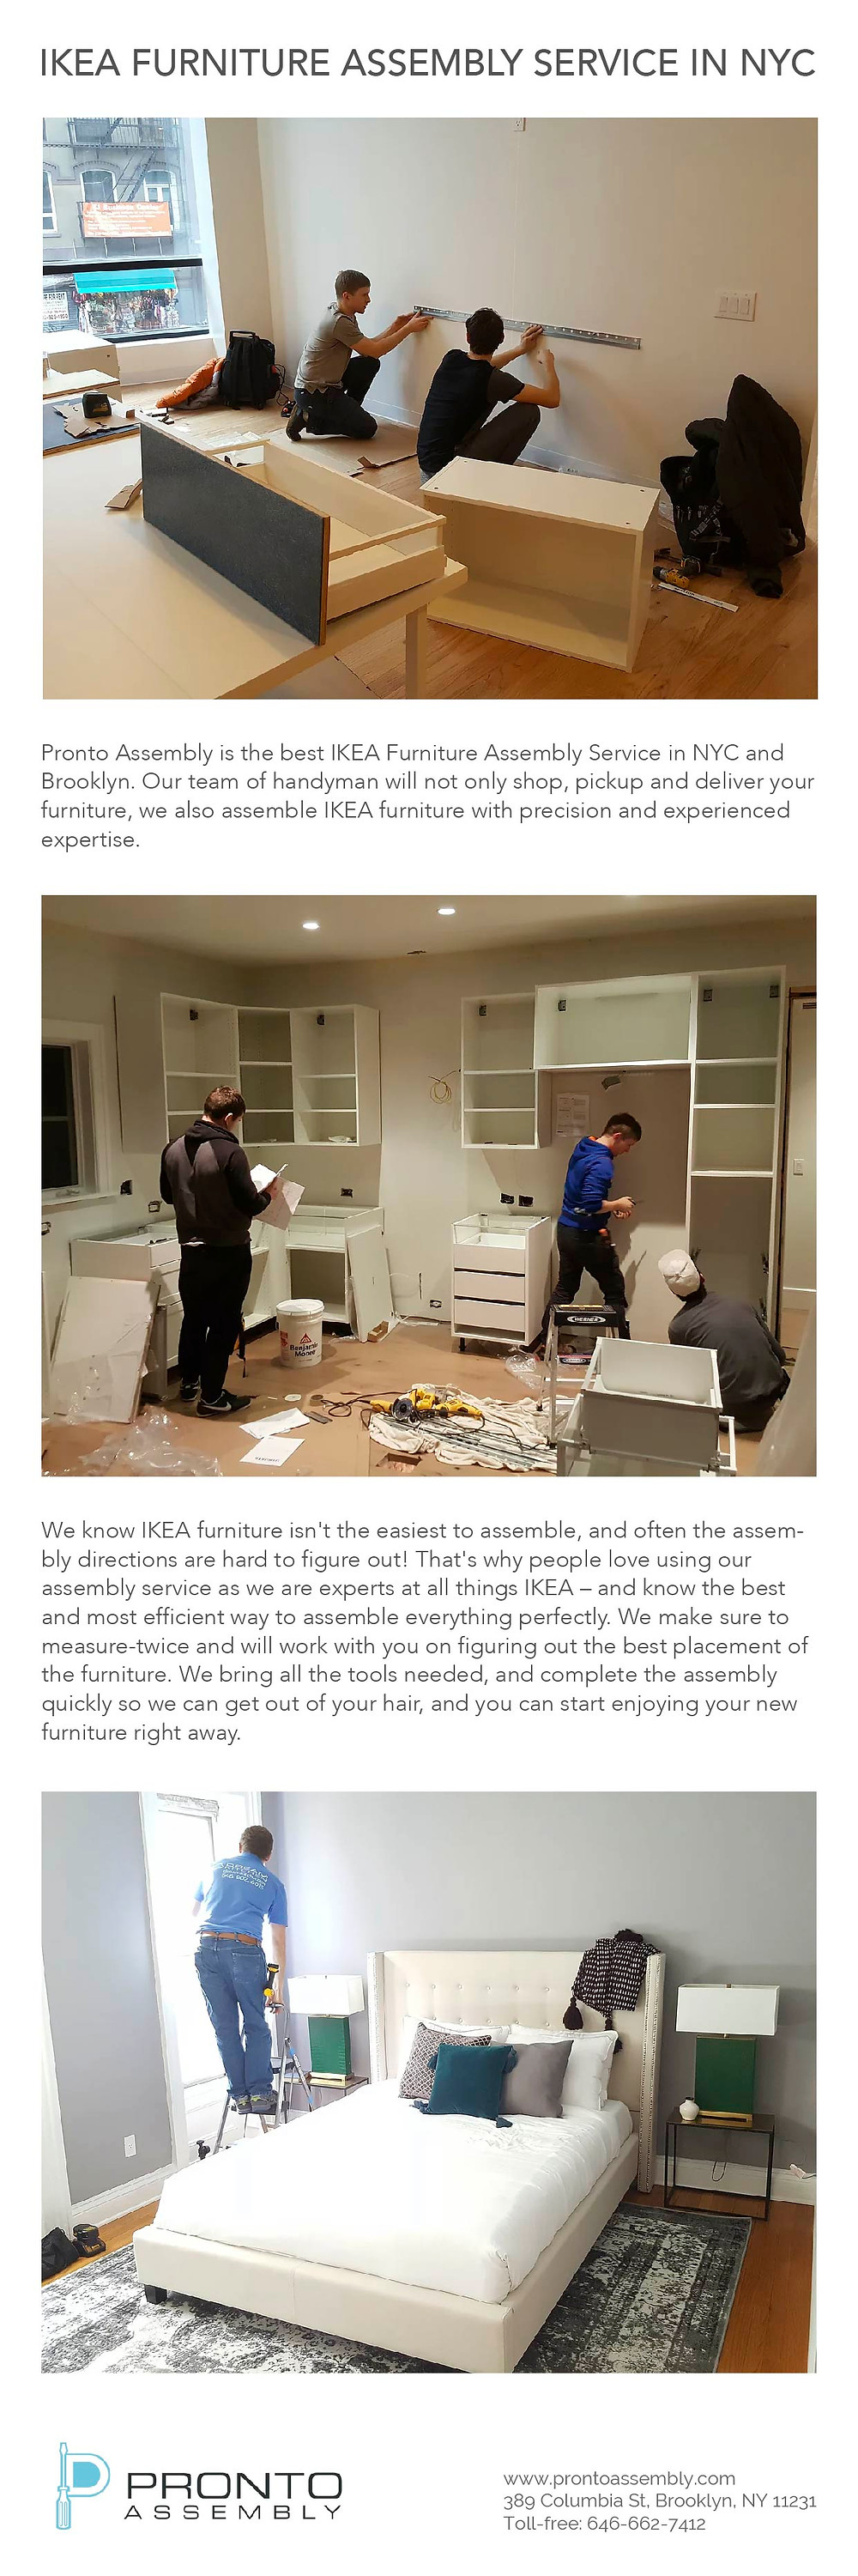 ikea-furniture-assembly-service-in-nyc